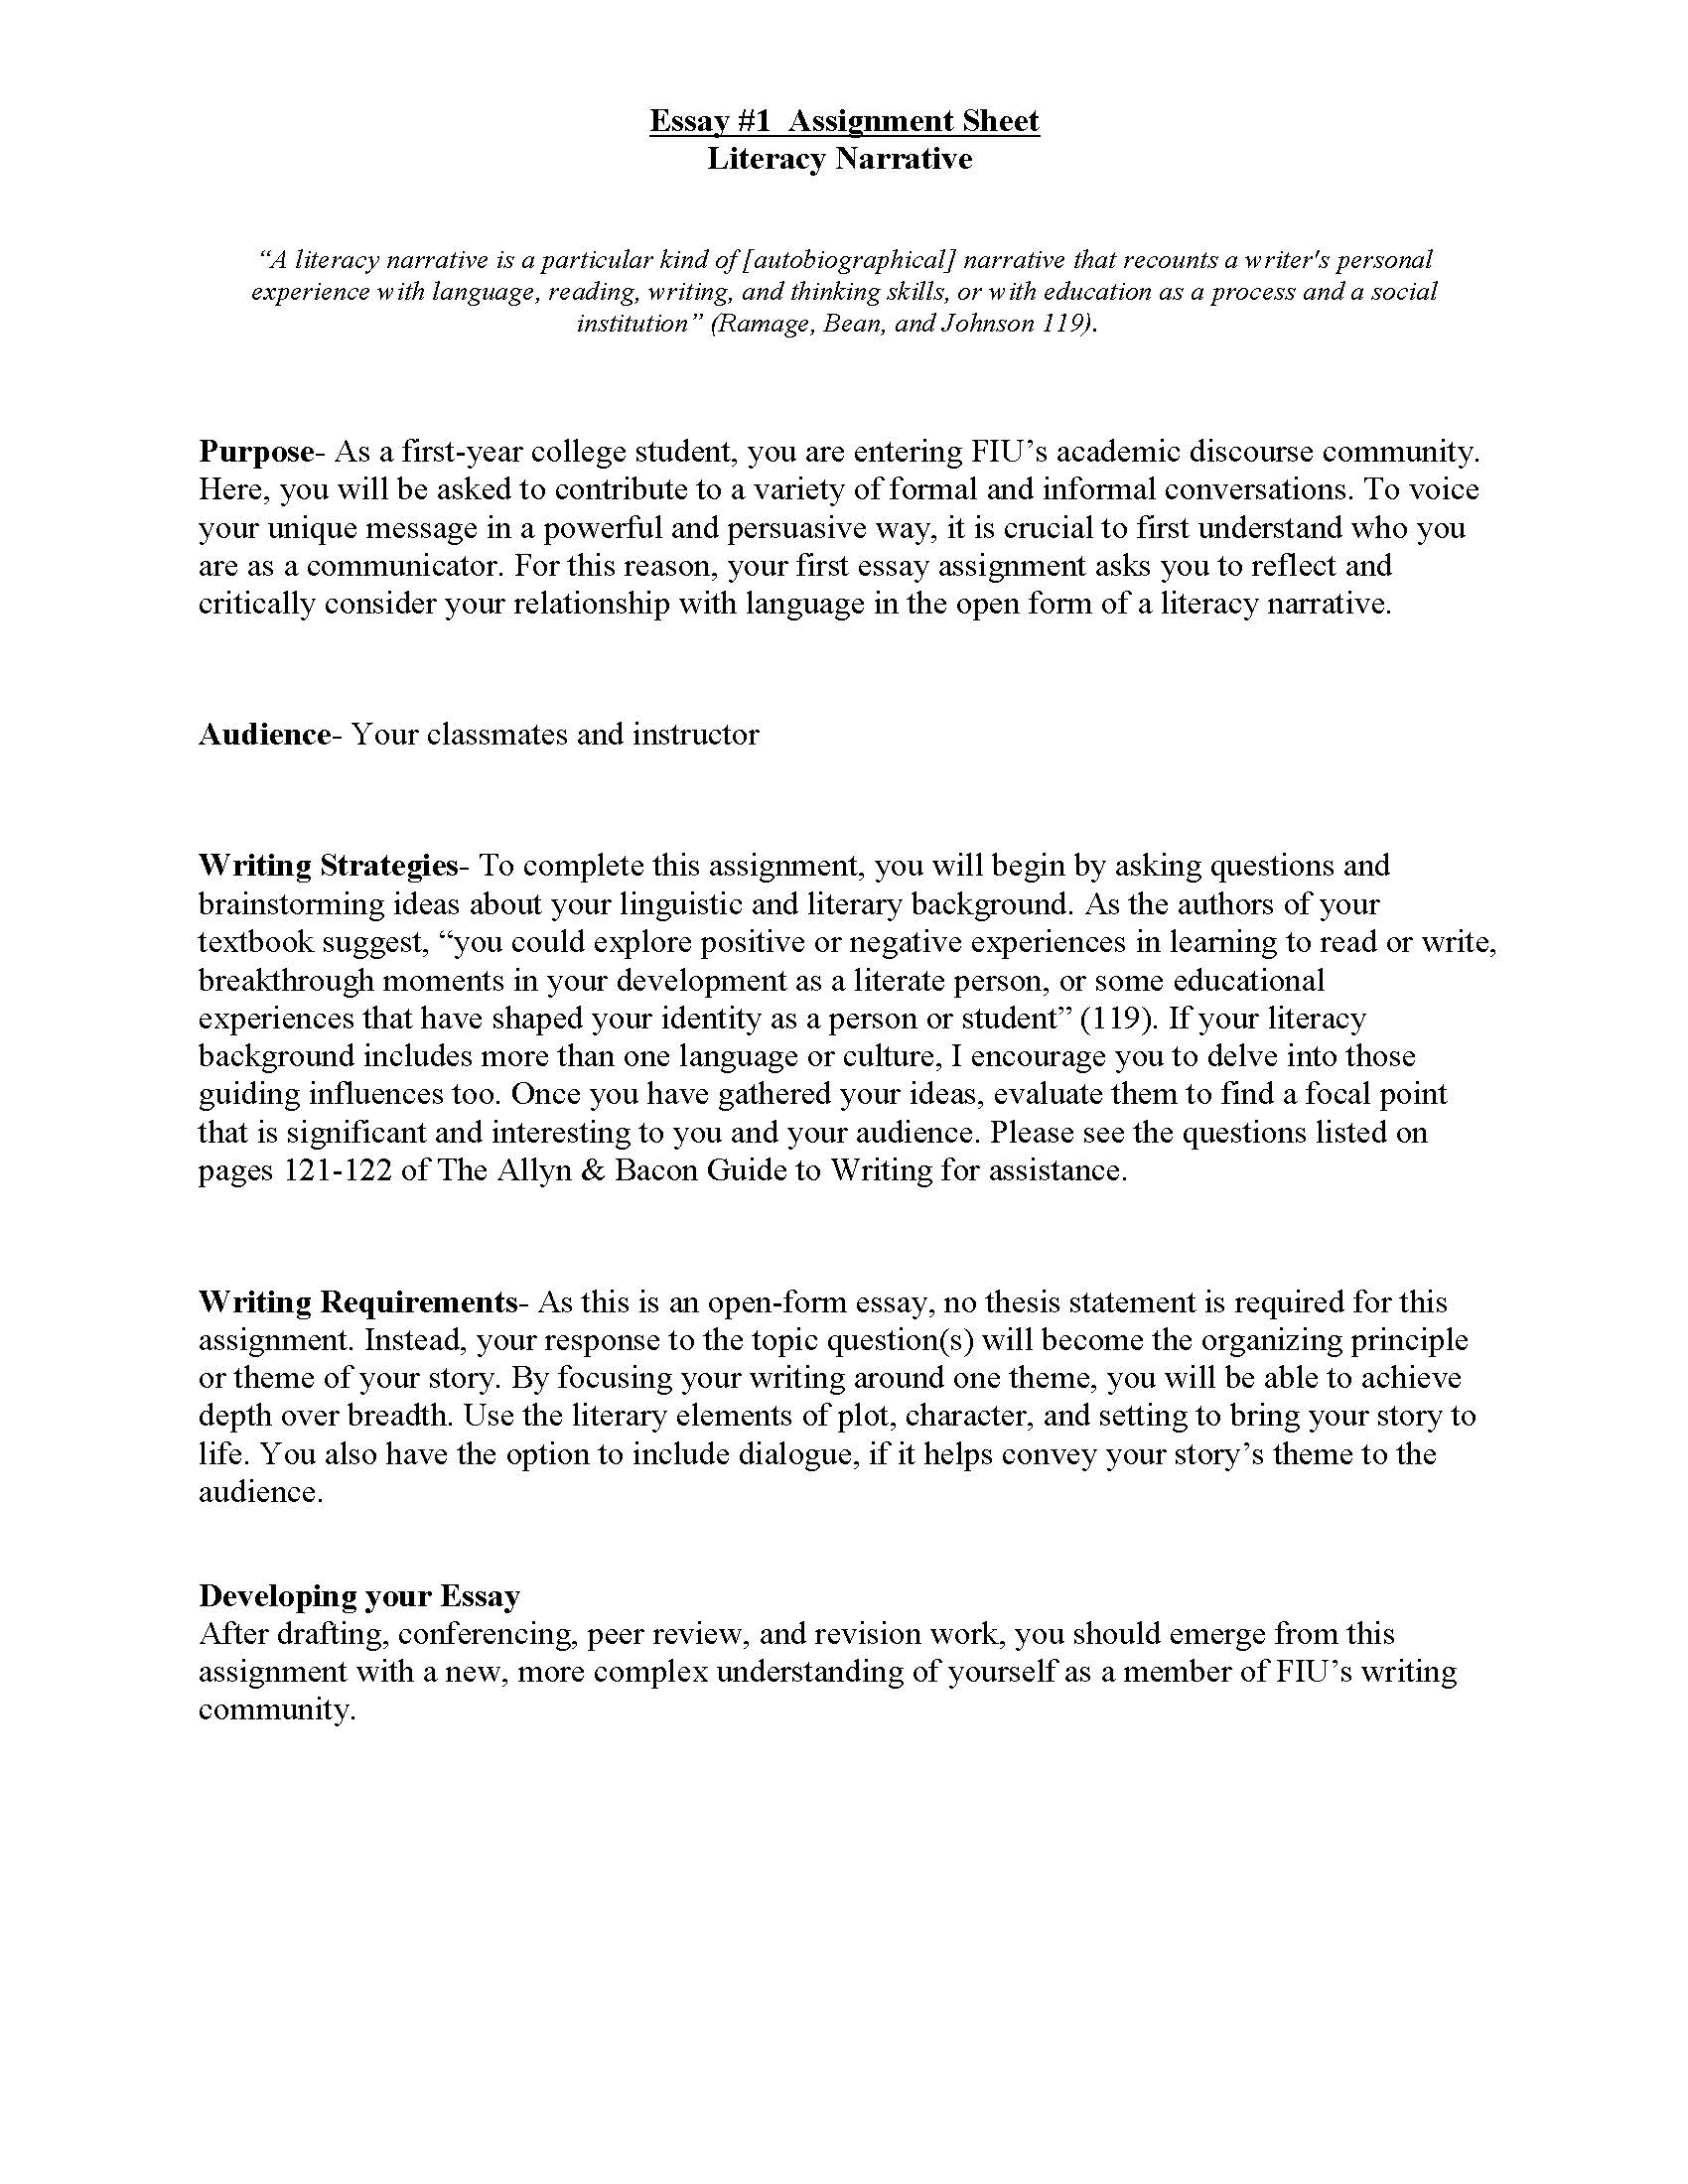 010 Essay Example Examples Of Narrative Literacy Unit Assignment Spring 2012 Page 1 Fascinating A Short About Yourself In Third Person Pdf Full